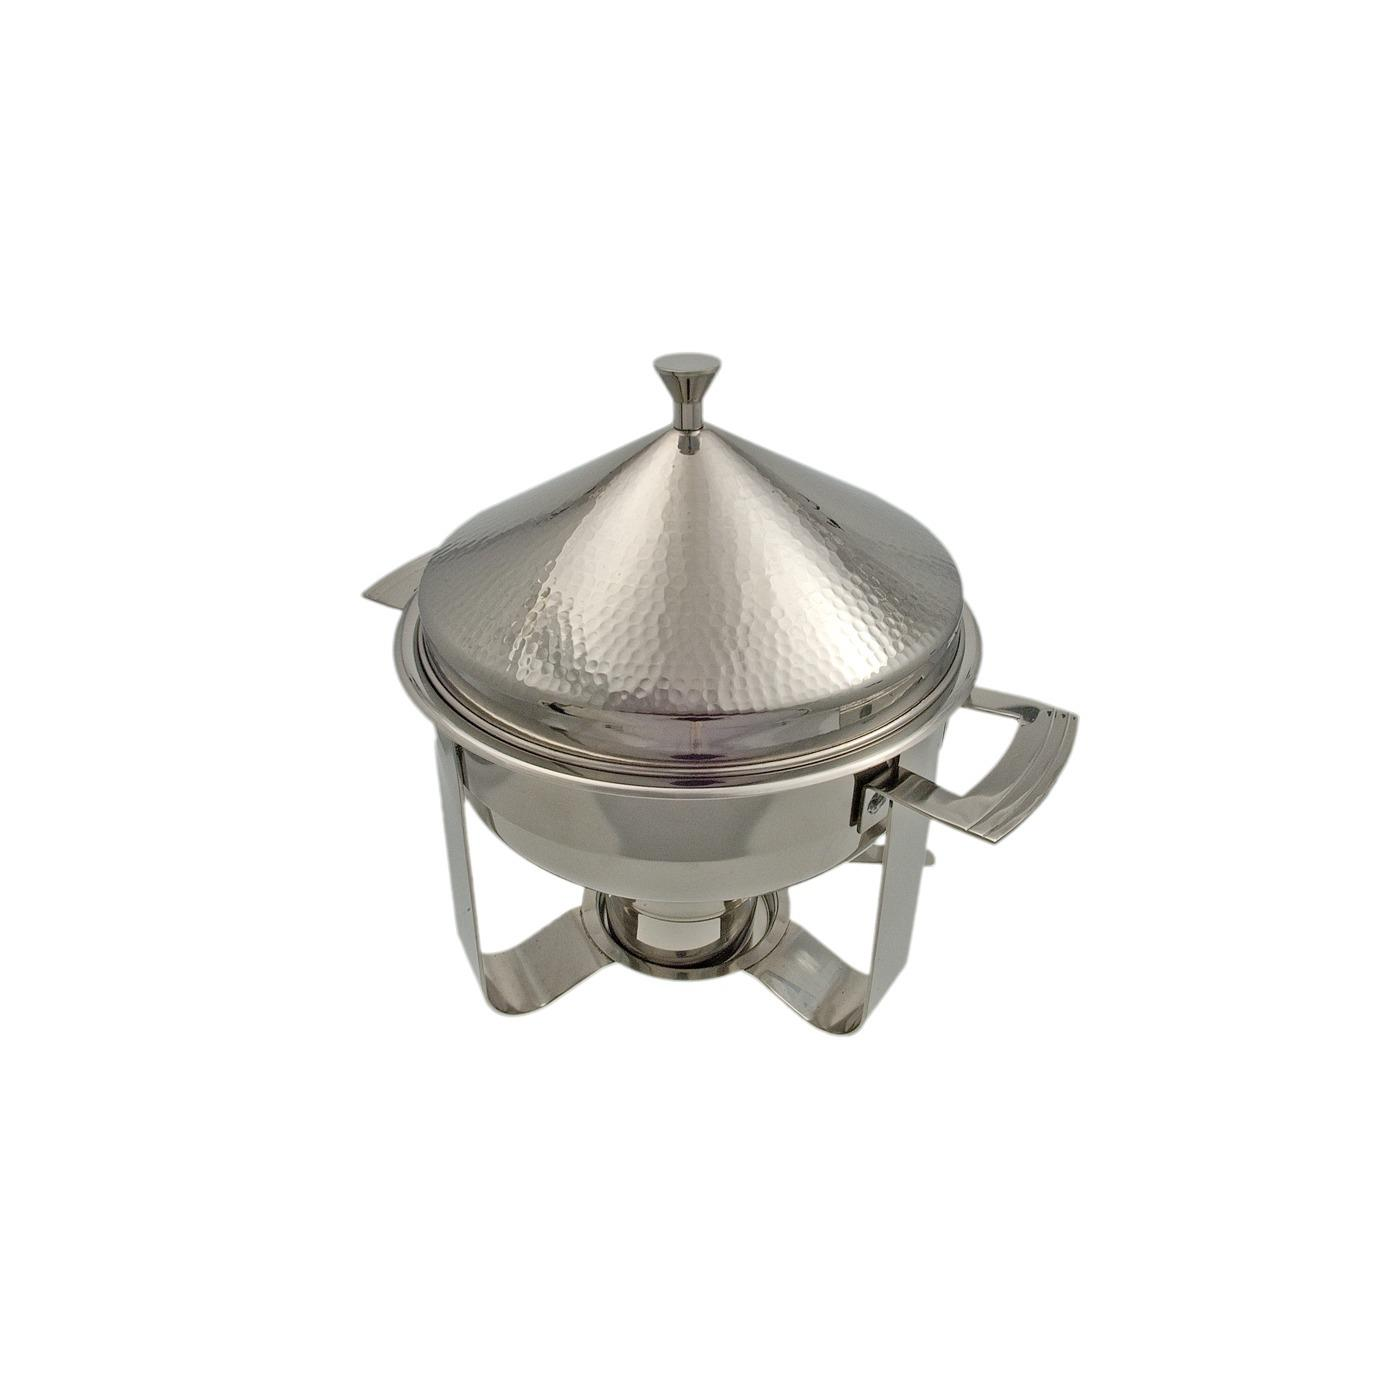 Stainless Steel Hammered Chafer - Round 3 Quart